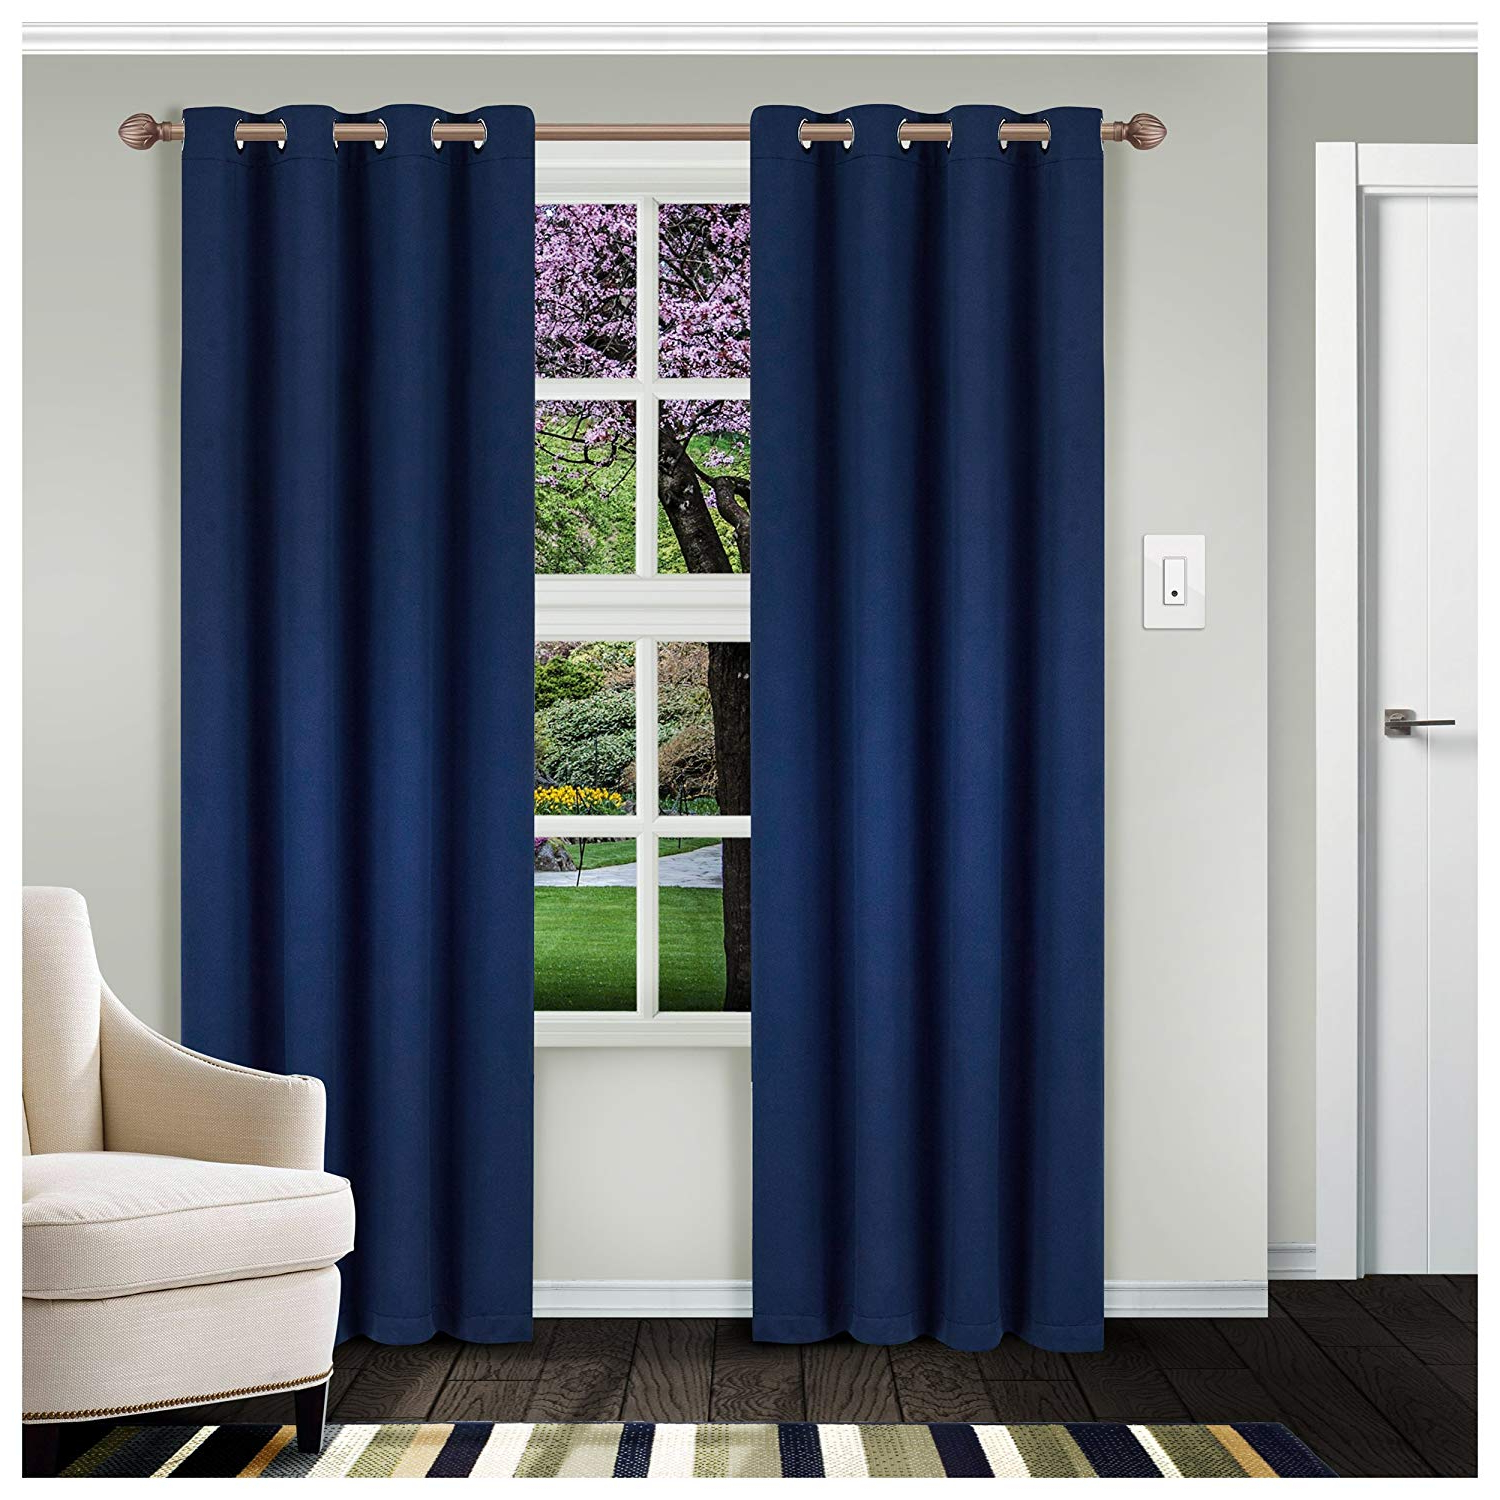 Grommet Top Thermal Insulated Blackout Curtain Panel Pairs Pertaining To Best And Newest Superior Solid Blackout Curtain Set Of 2, Thermal Insulated Panel Pair With Grommet Top Header, Elegant Solid Room Darkening Drapes, Available In (View 19 of 20)